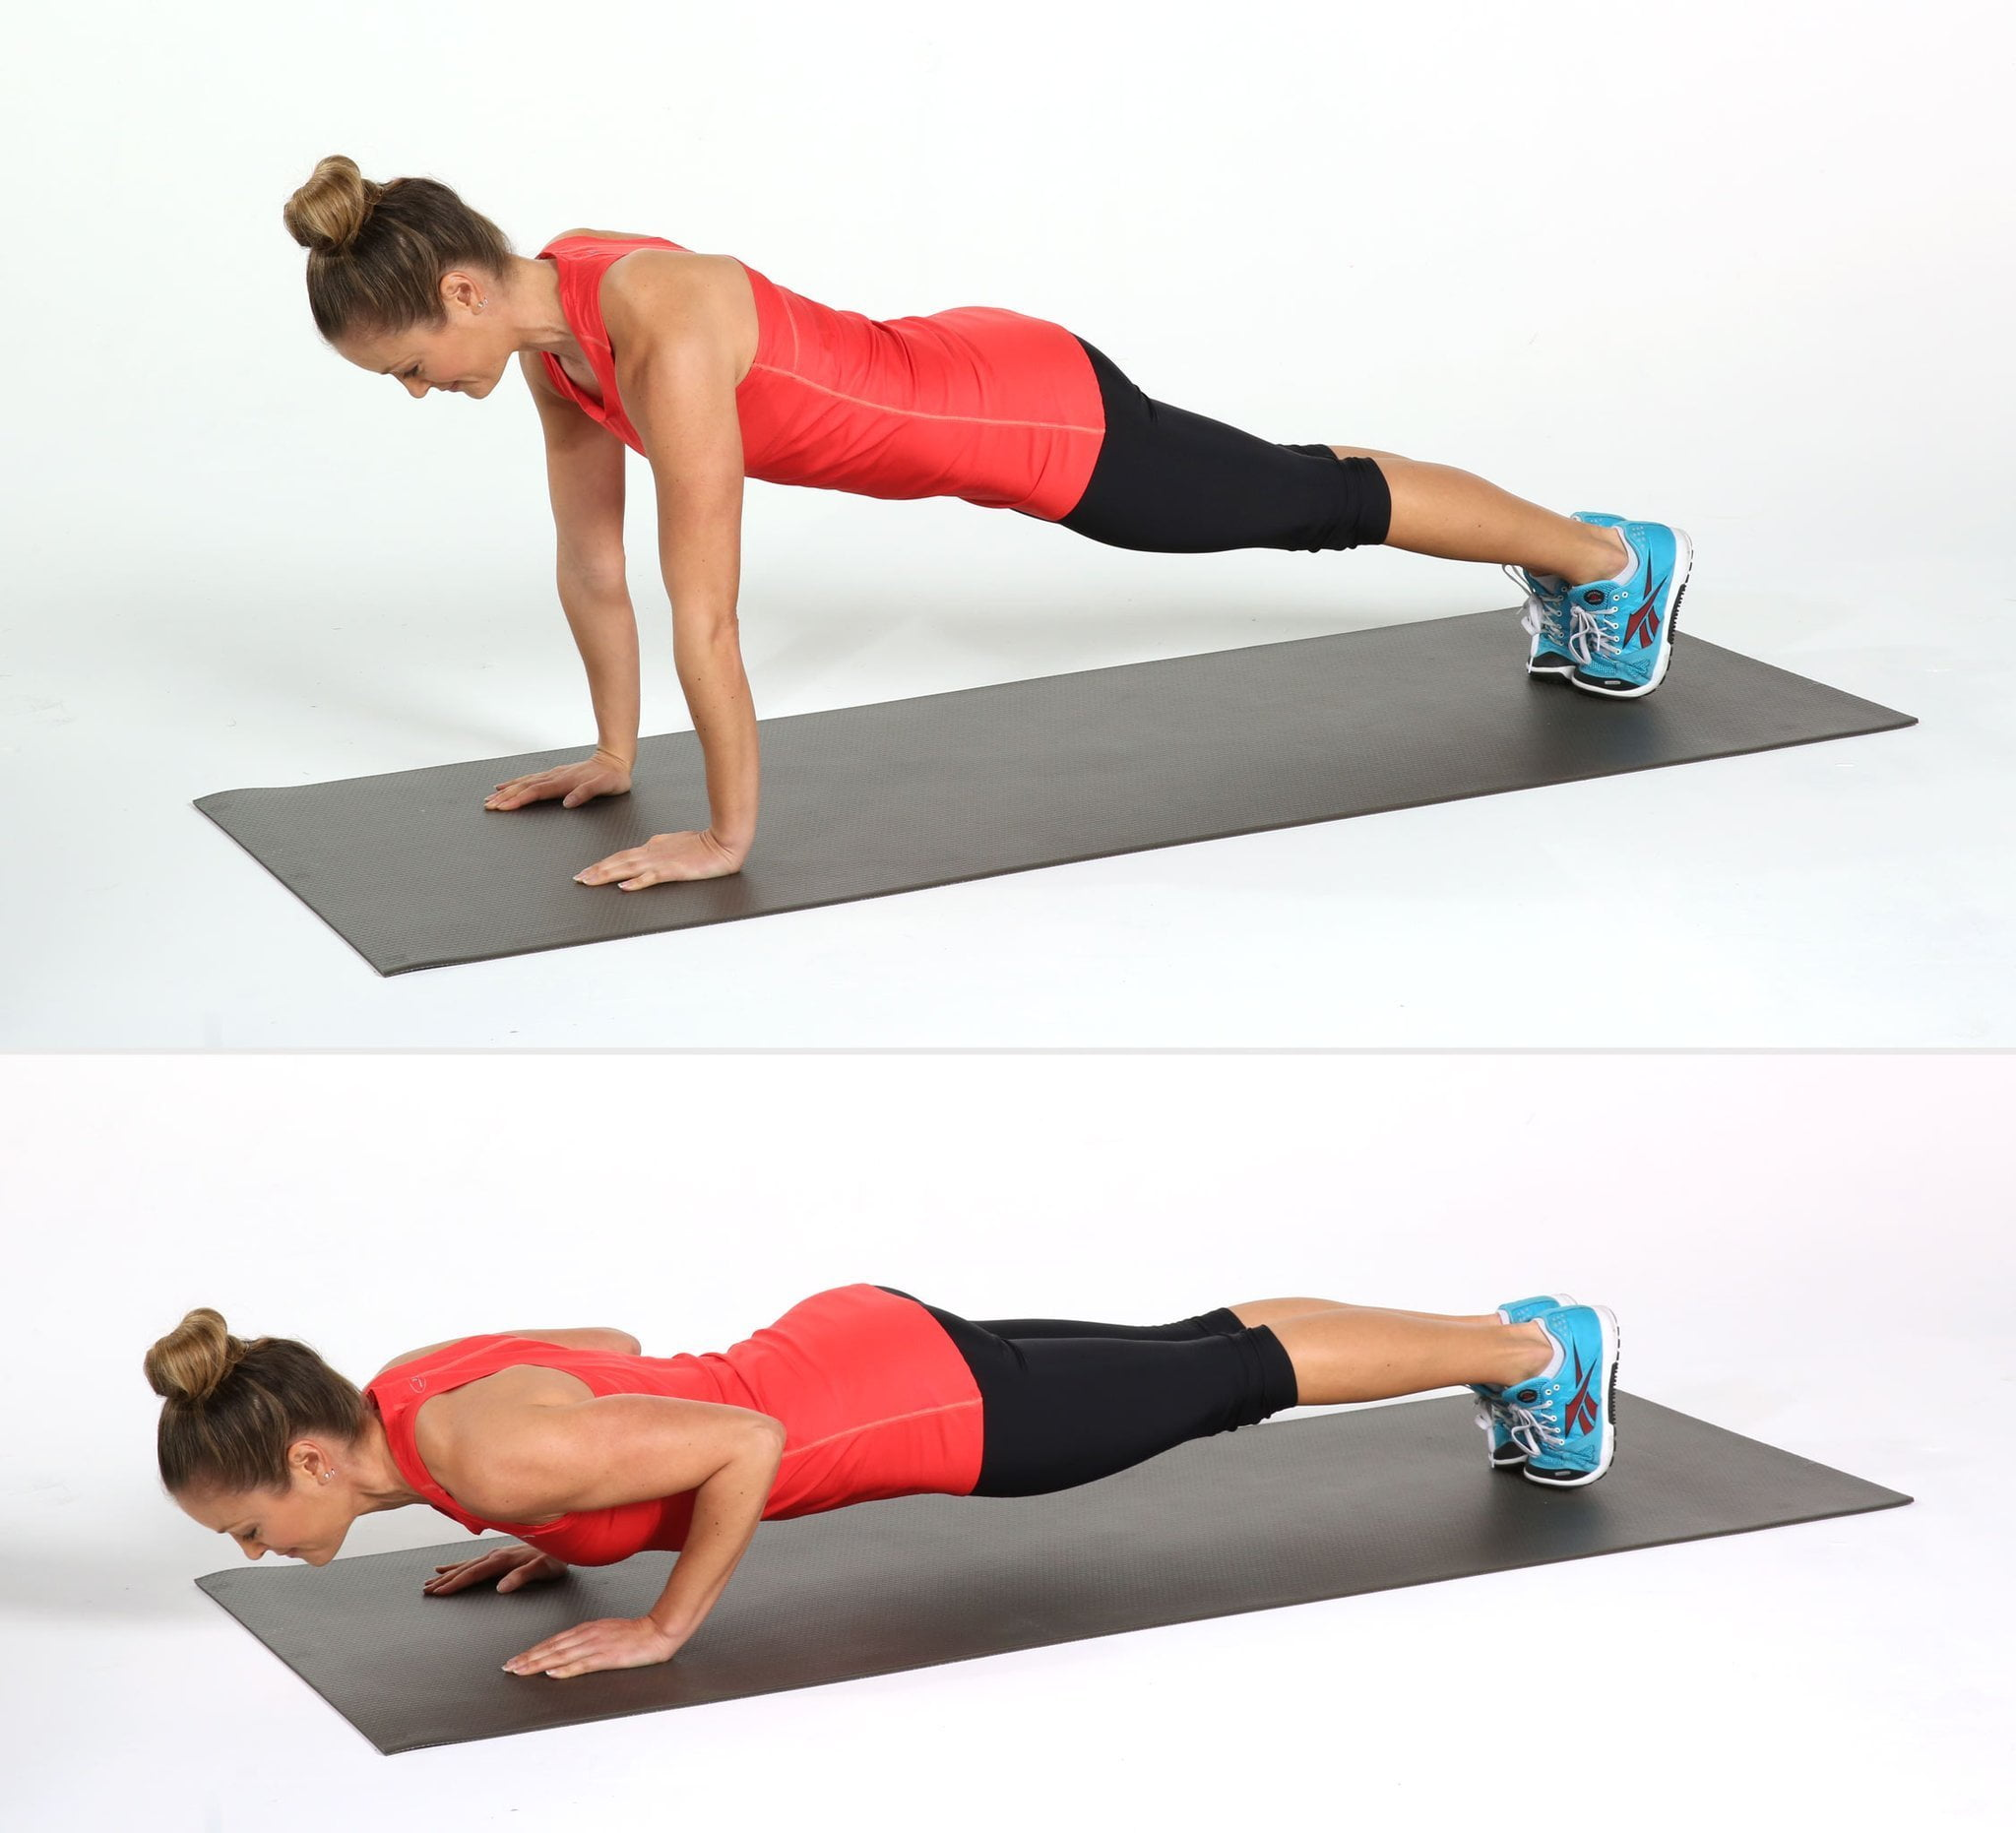 full push up on hands and toes